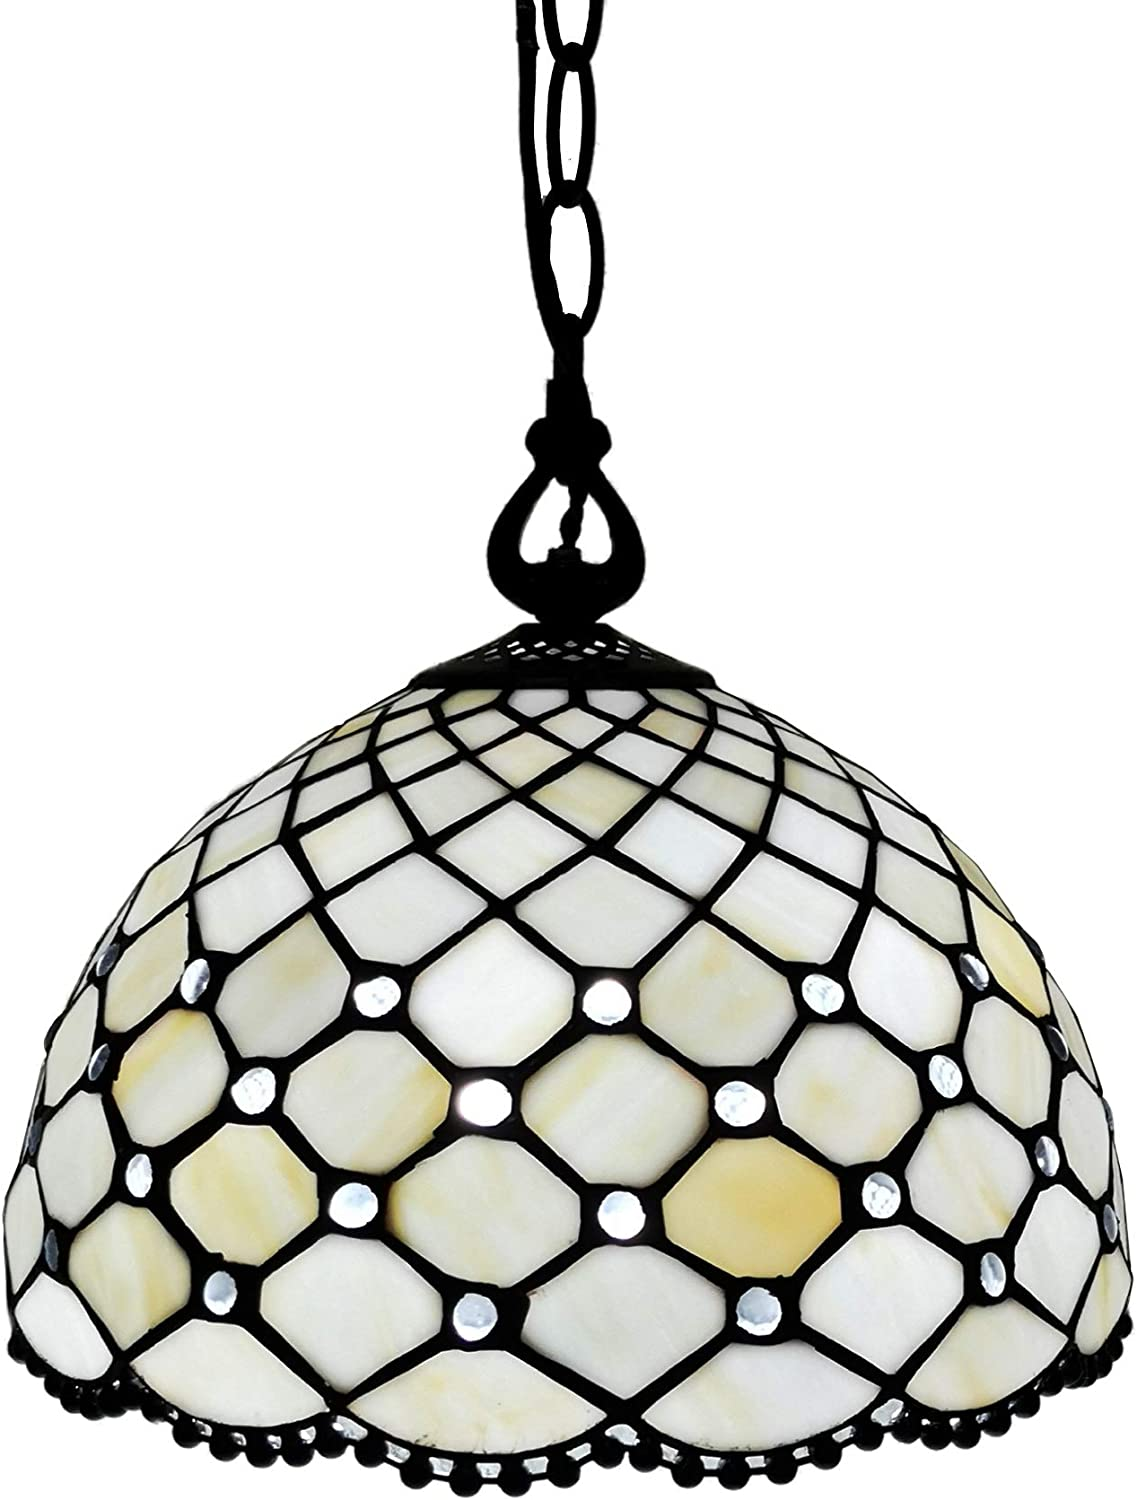 """Amora Lighting Tiffany Style Hanging Pendant Lamp Ceiling 12"""" Wide Stained Glass White Jeweled Antique Vintage Light Decor Restaurant Game Living Dining Room Kitchen Gift AM119HL12B"""